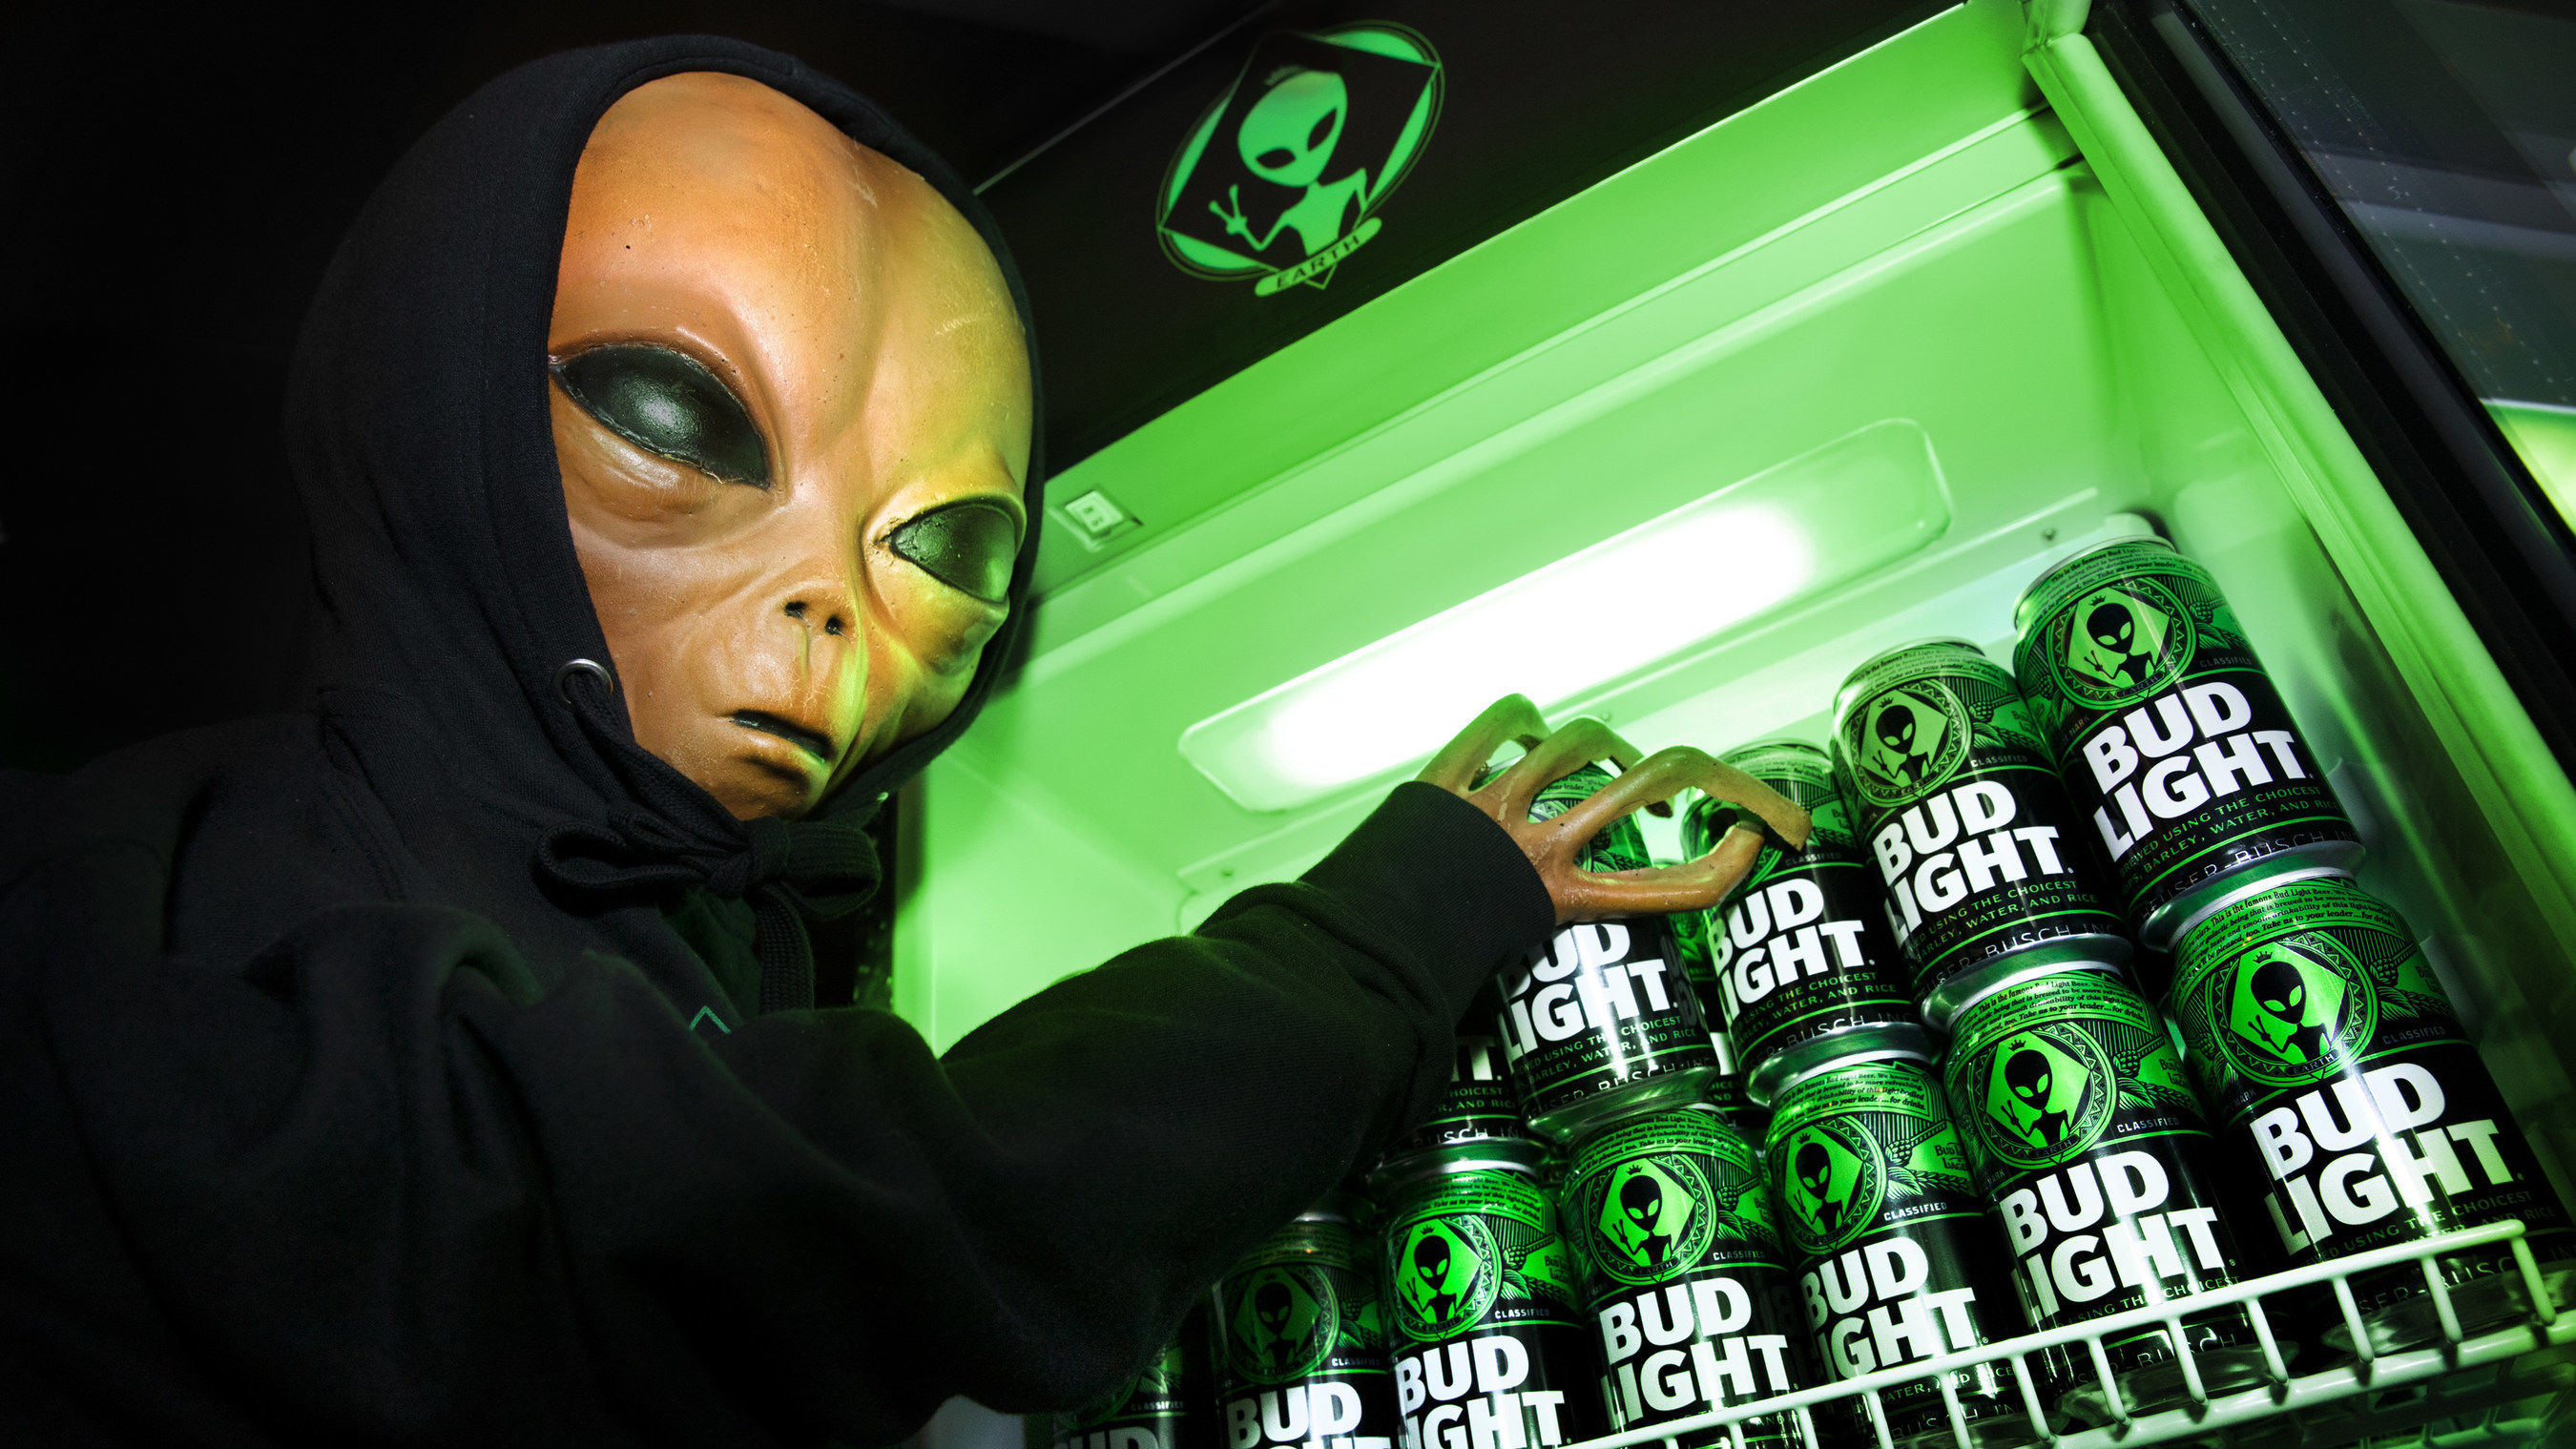 Bud Light Produces Special Edition Alien-Themed Cans